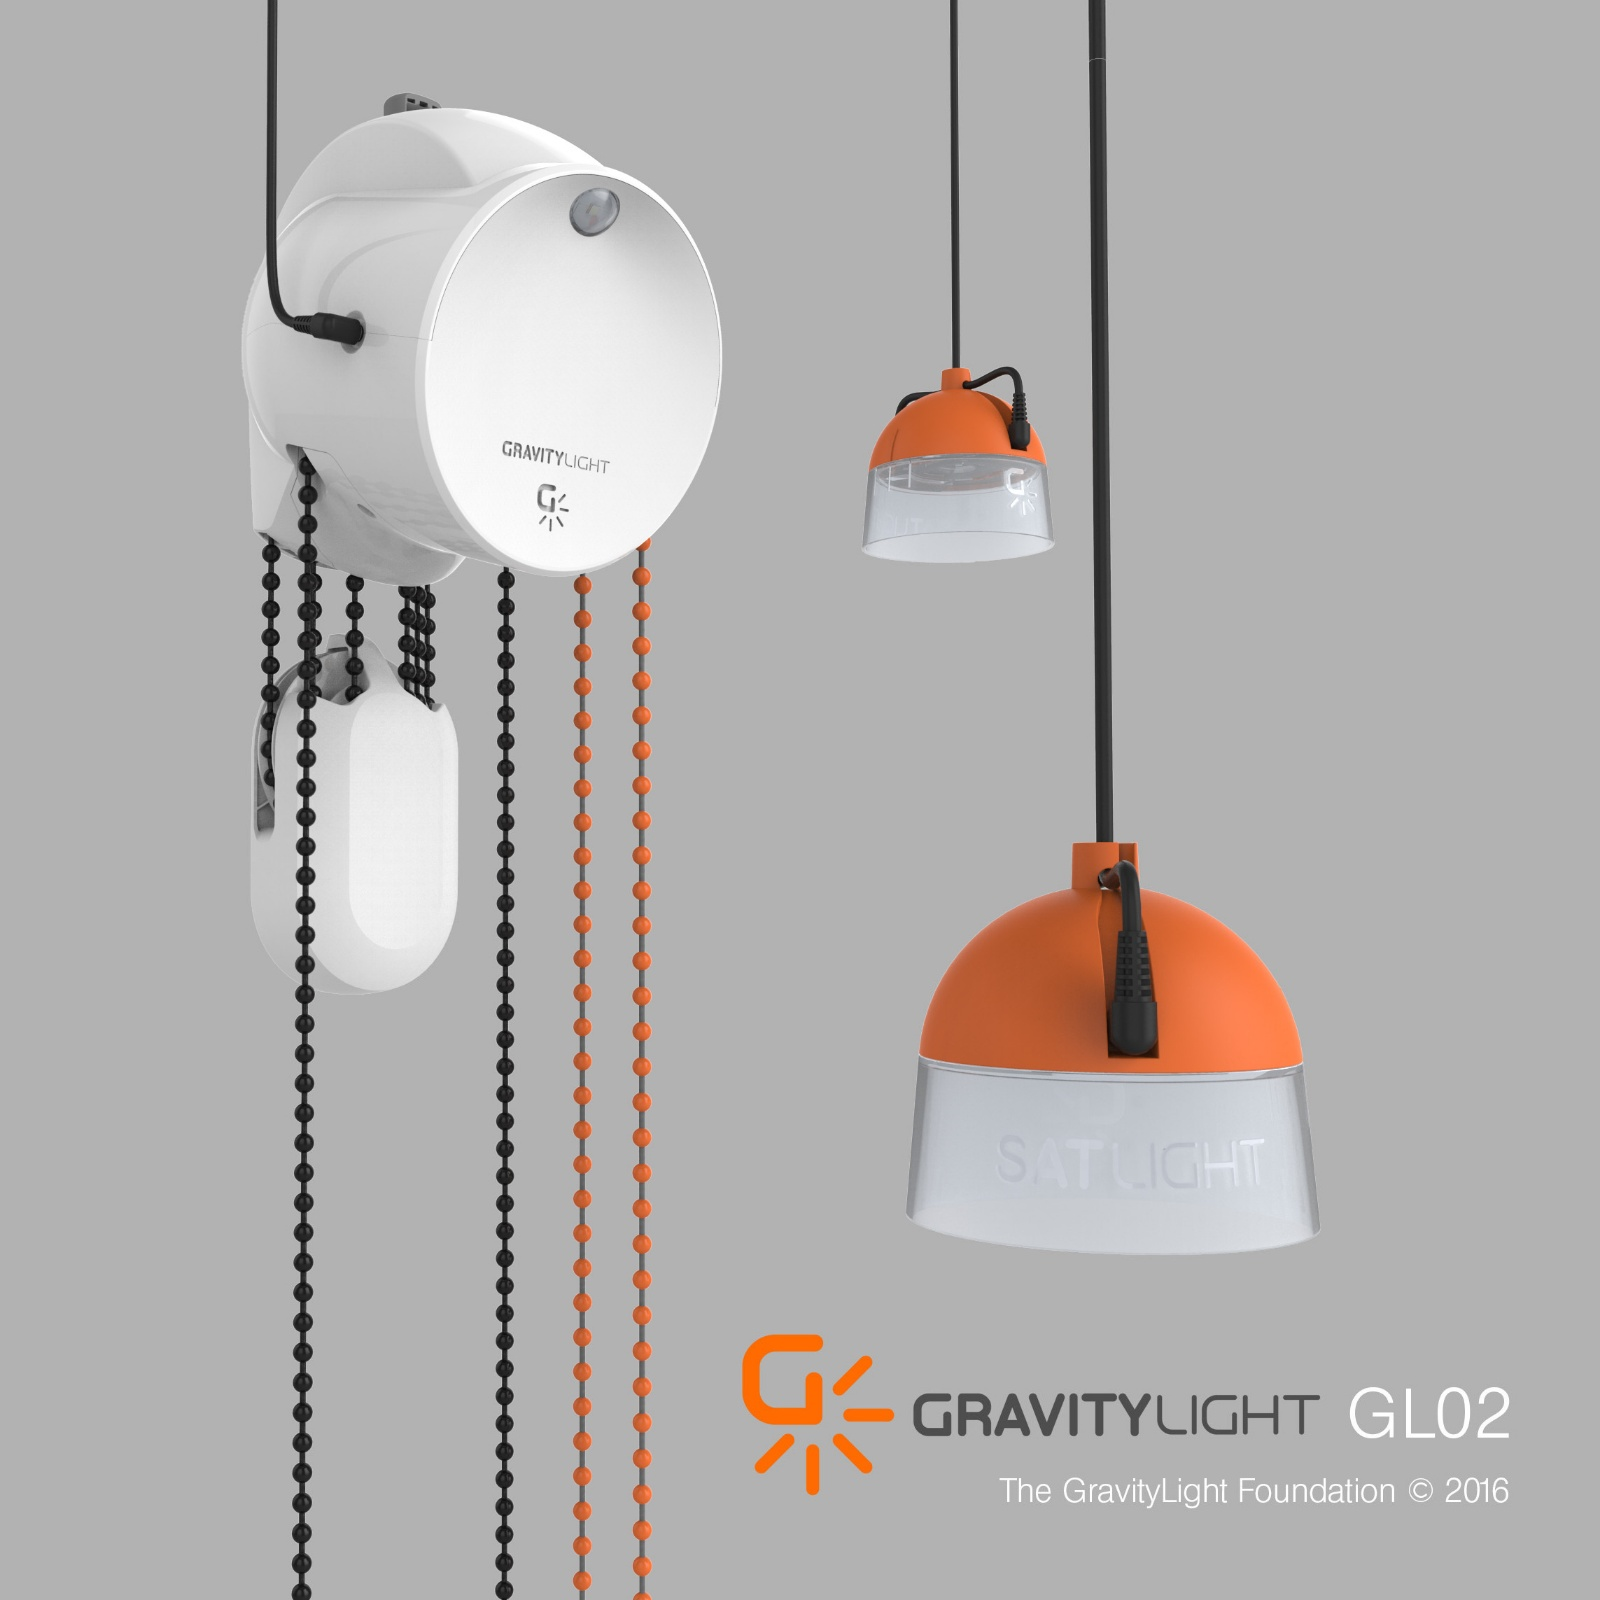 x1-gravitylight-and-x2-satlights-grey-branded-